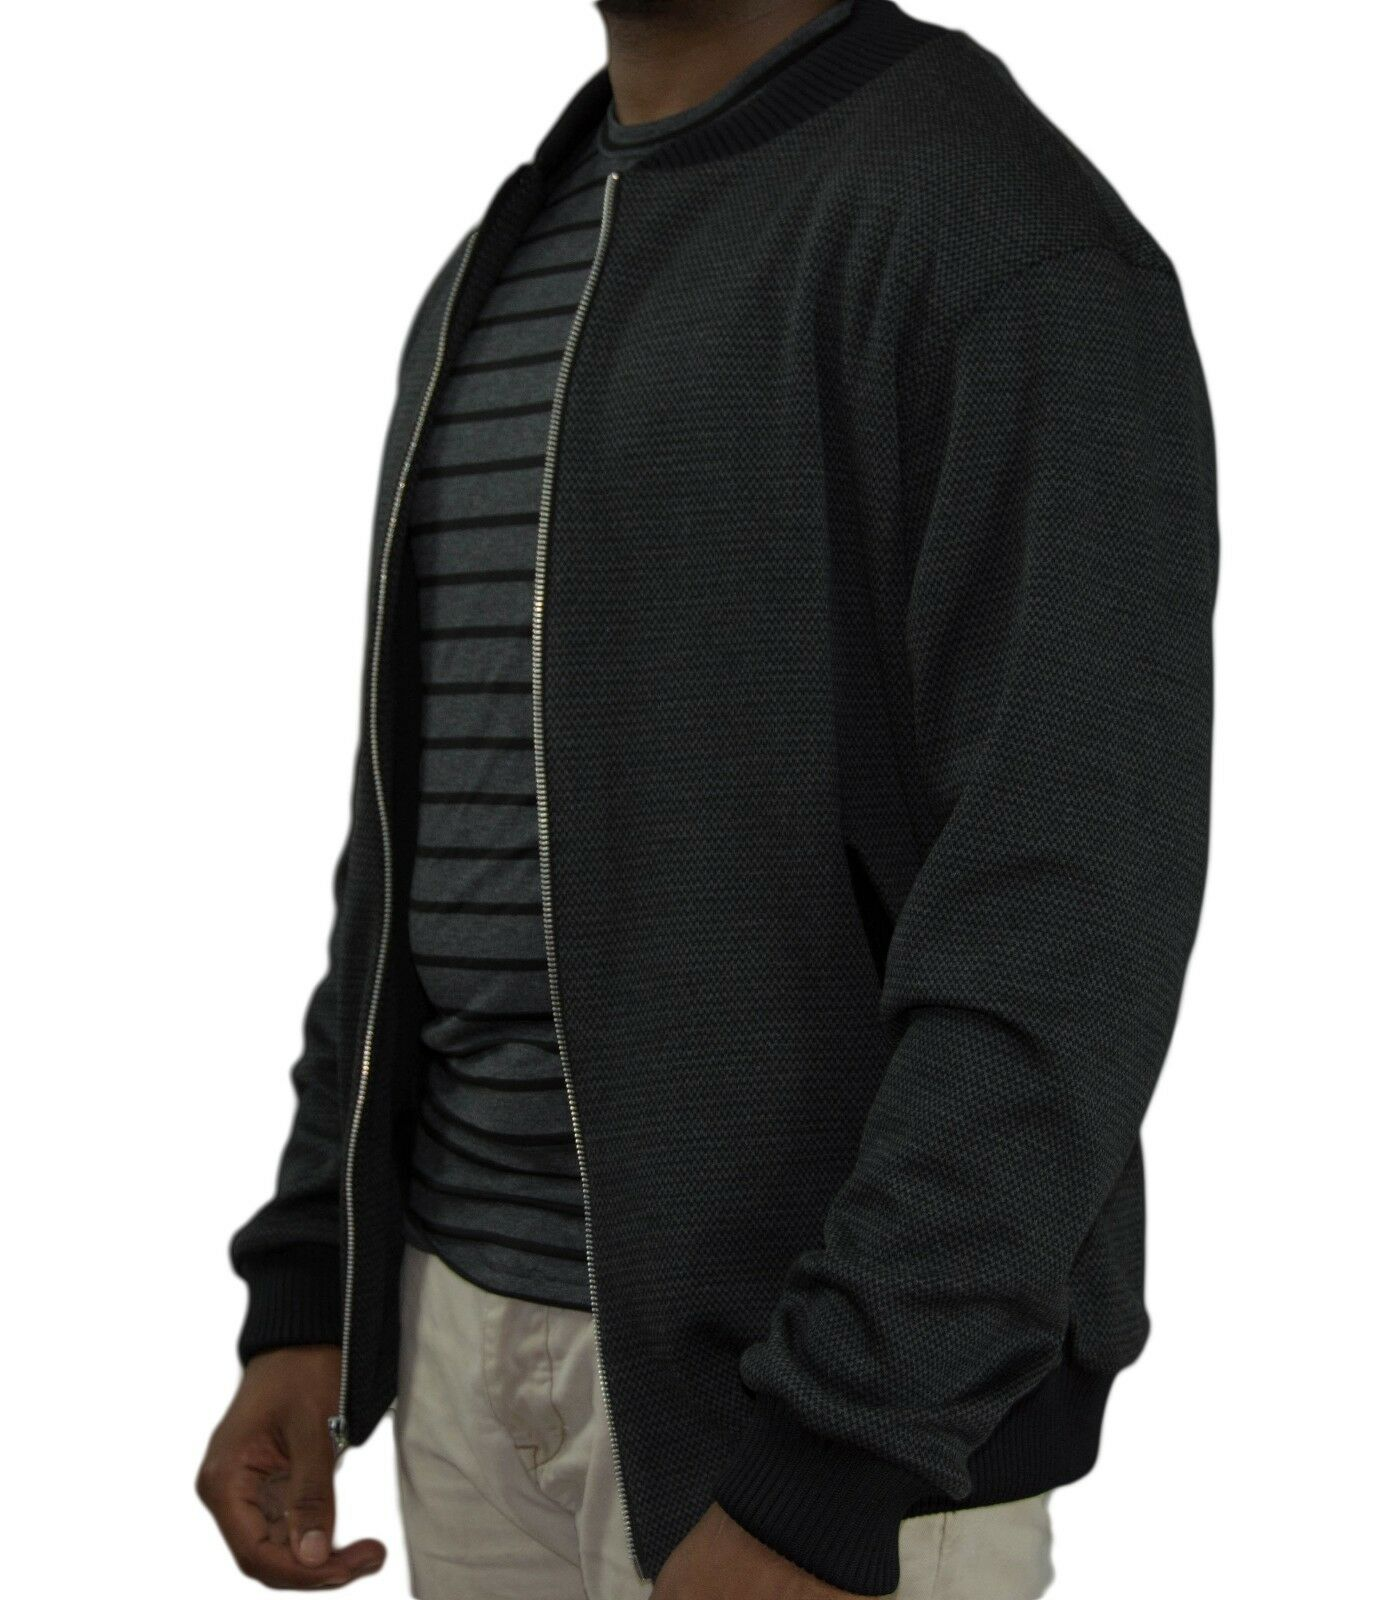 Men's Grey Wool Knit Bomber - Size Medium and Large